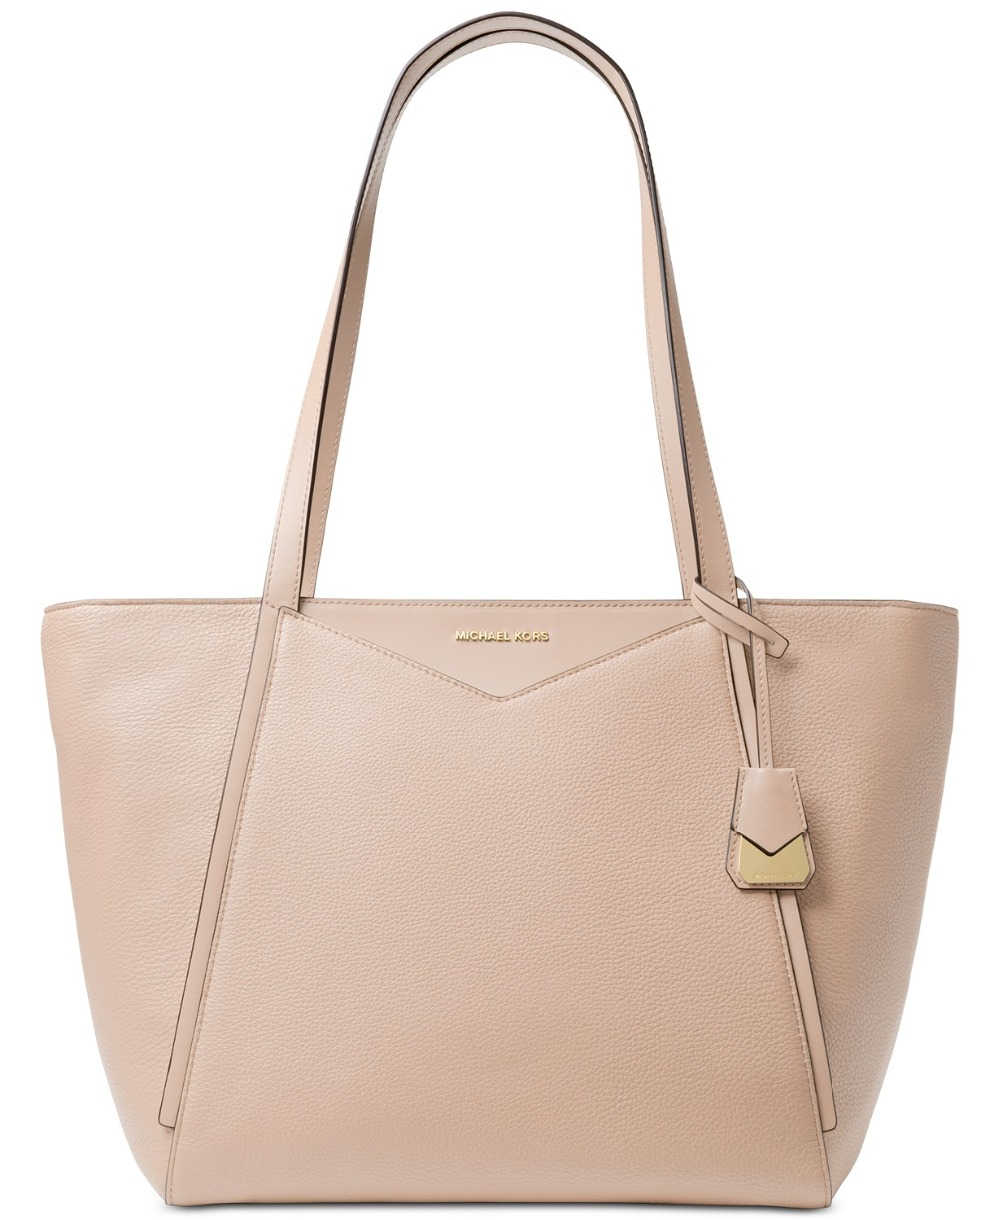 ... Michael Kors Whitney Large Soft Leather Tote Luxury Handbags For Women  Bags Designer by MK ...